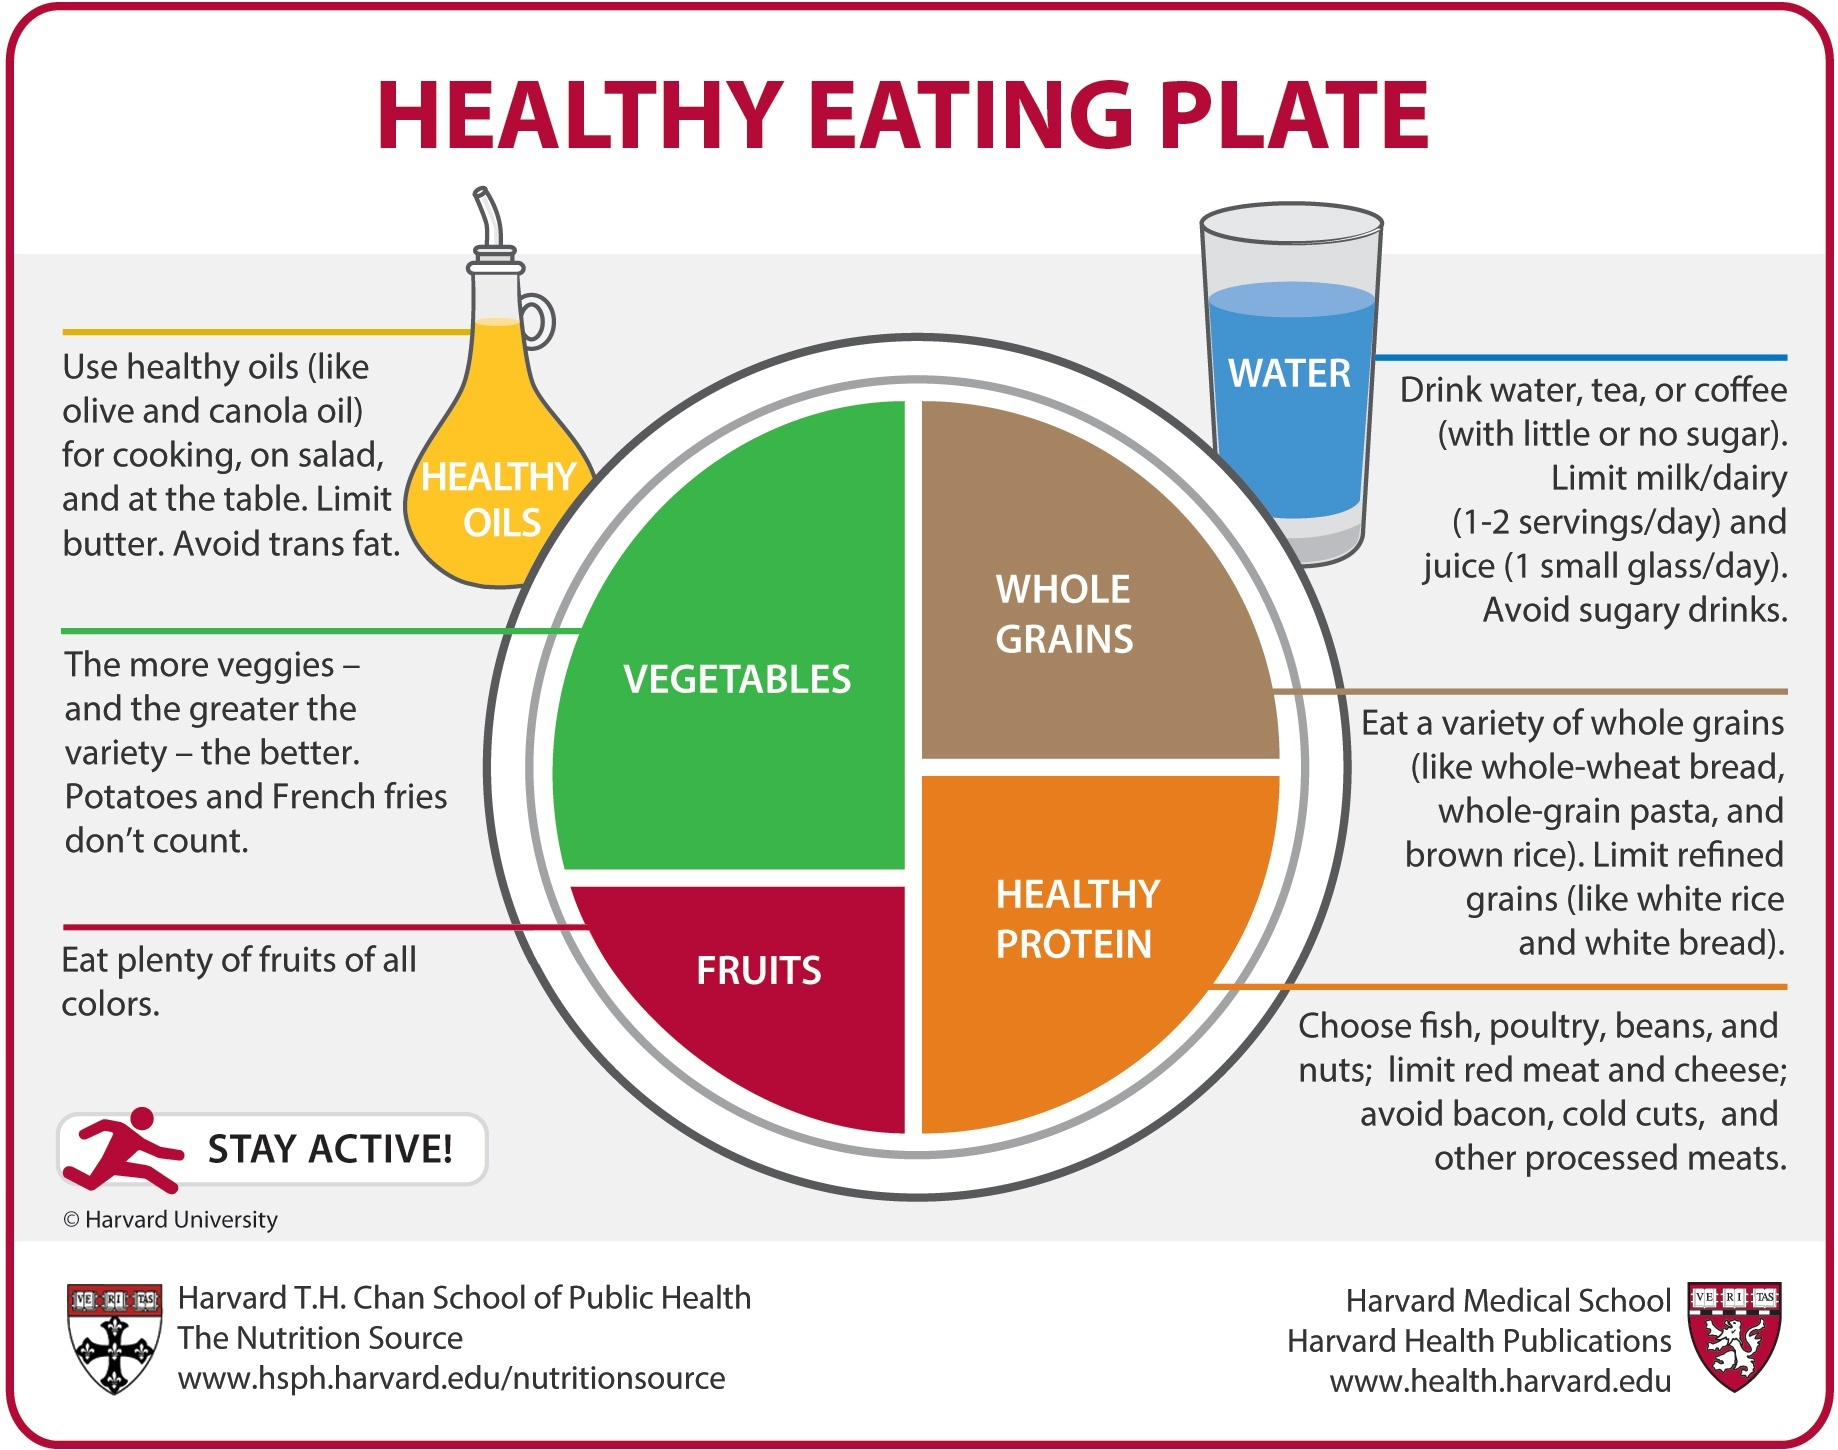 My Favourite Fruit Essay Healthy Eating Plate Healthy Eating Pyramid The Nutrition Healthy Eating  Plate World Wide Web Essay also Narrative Essay With Dialogue Example Essay On Healthy Eating Healthy Eating Plate Healthy Eating Pyramid  Invisible Man Essays